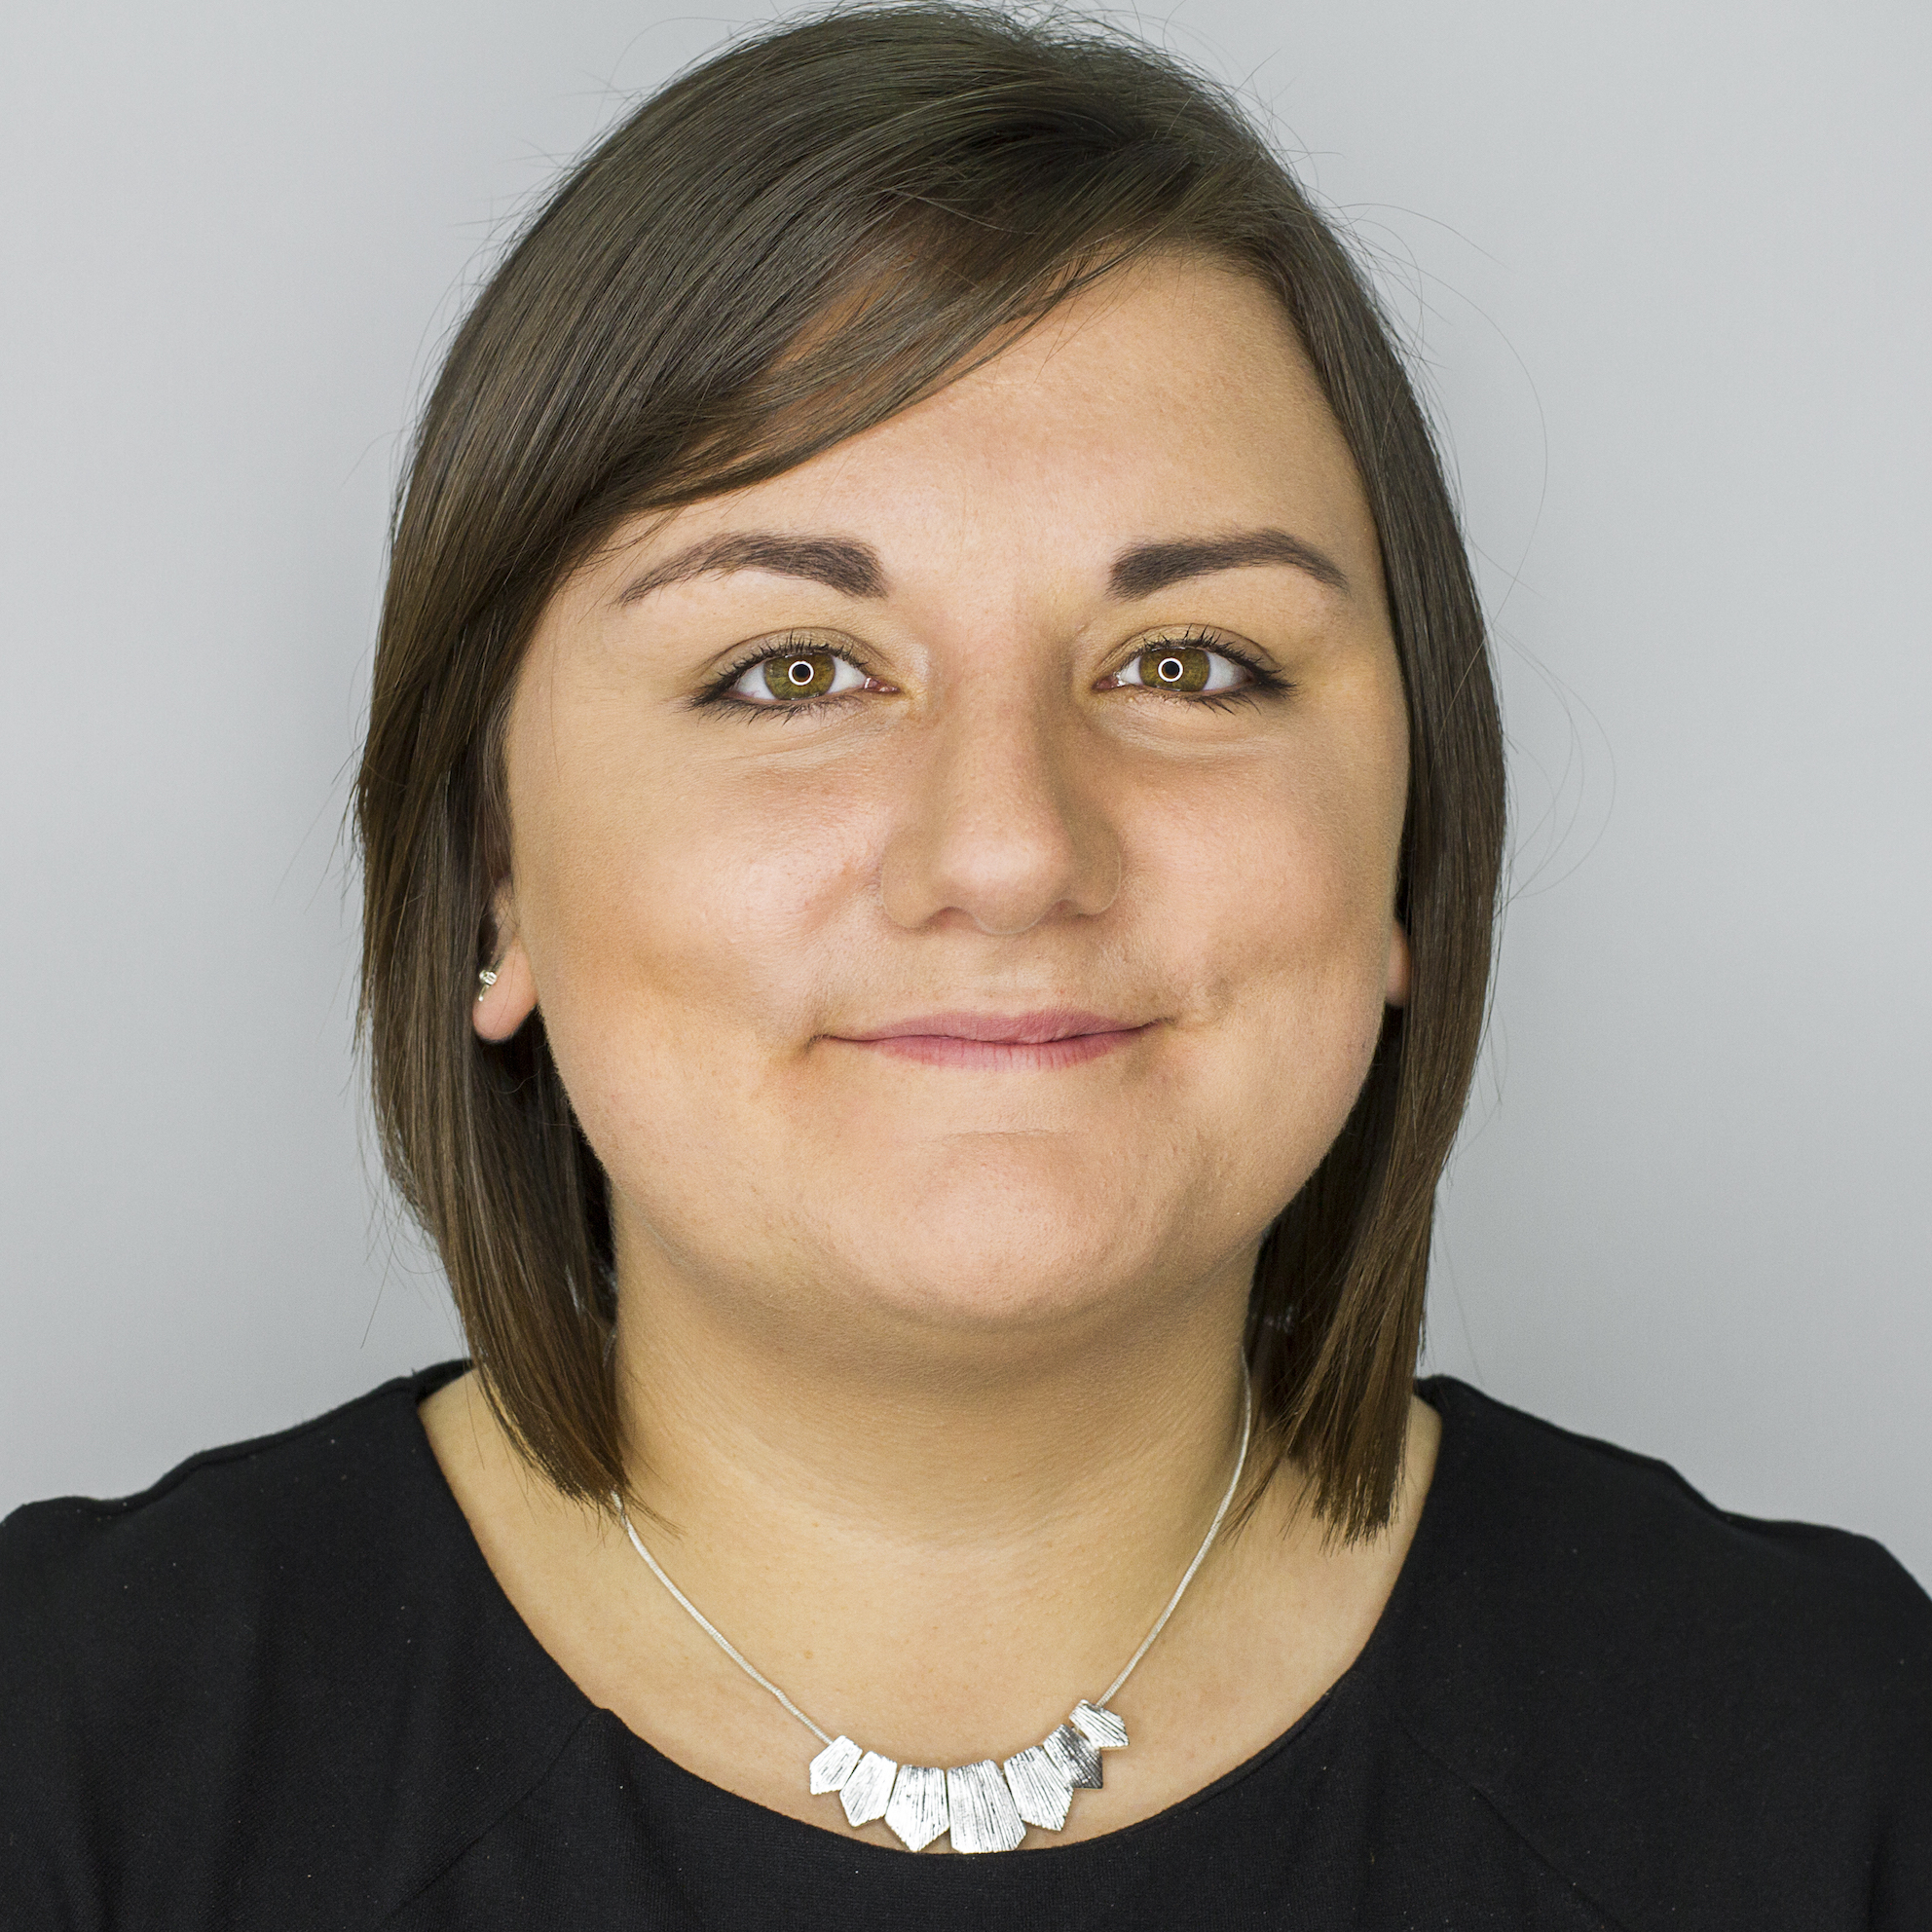 Trainee solicitor Abigail Payne, based in Plymouth and specialising in commercial property.